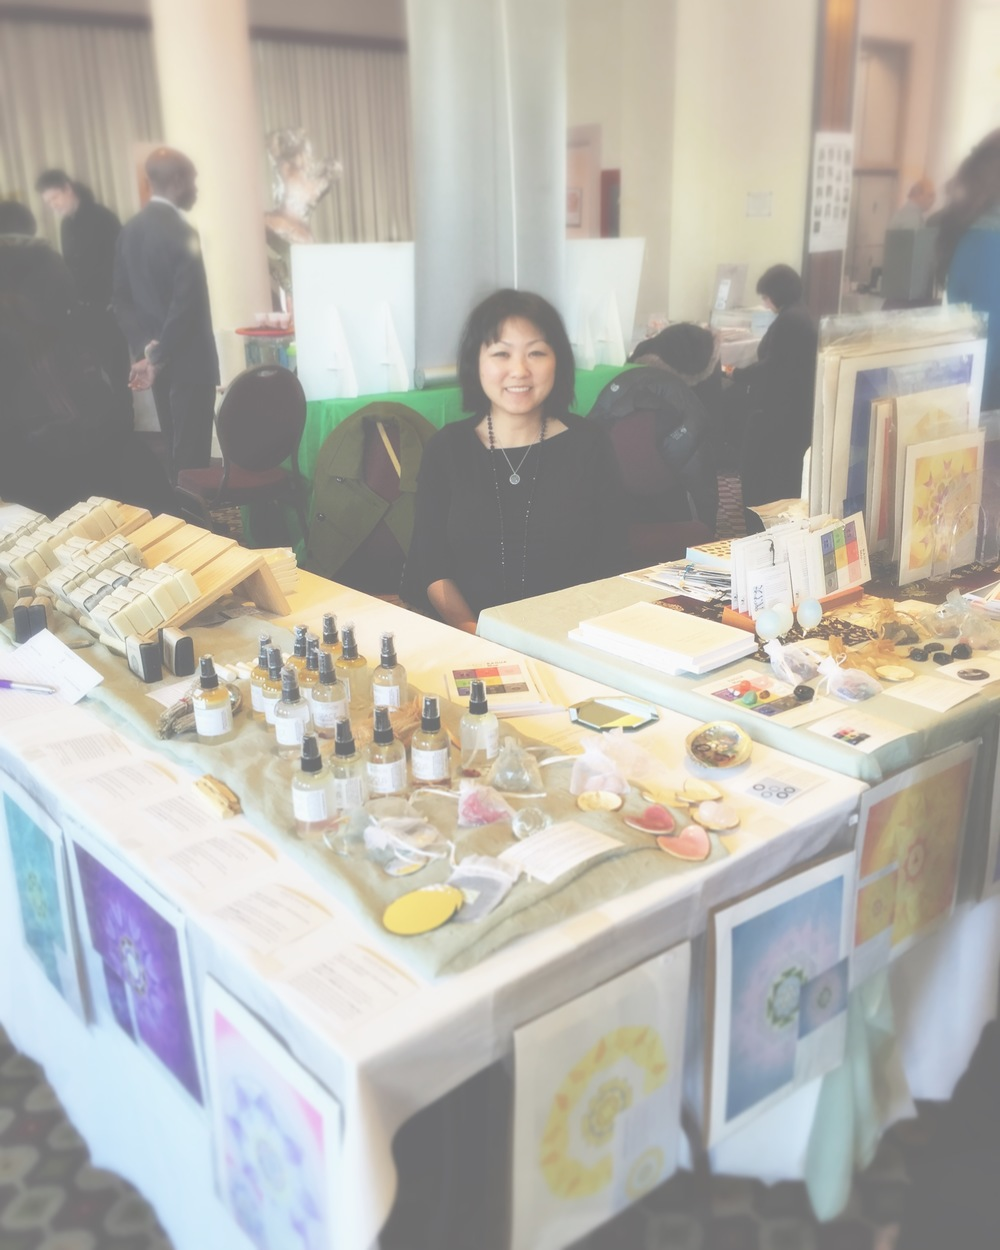 My last fair! Come visit us!  #awakenfair   #holisticspaces   #fengshui